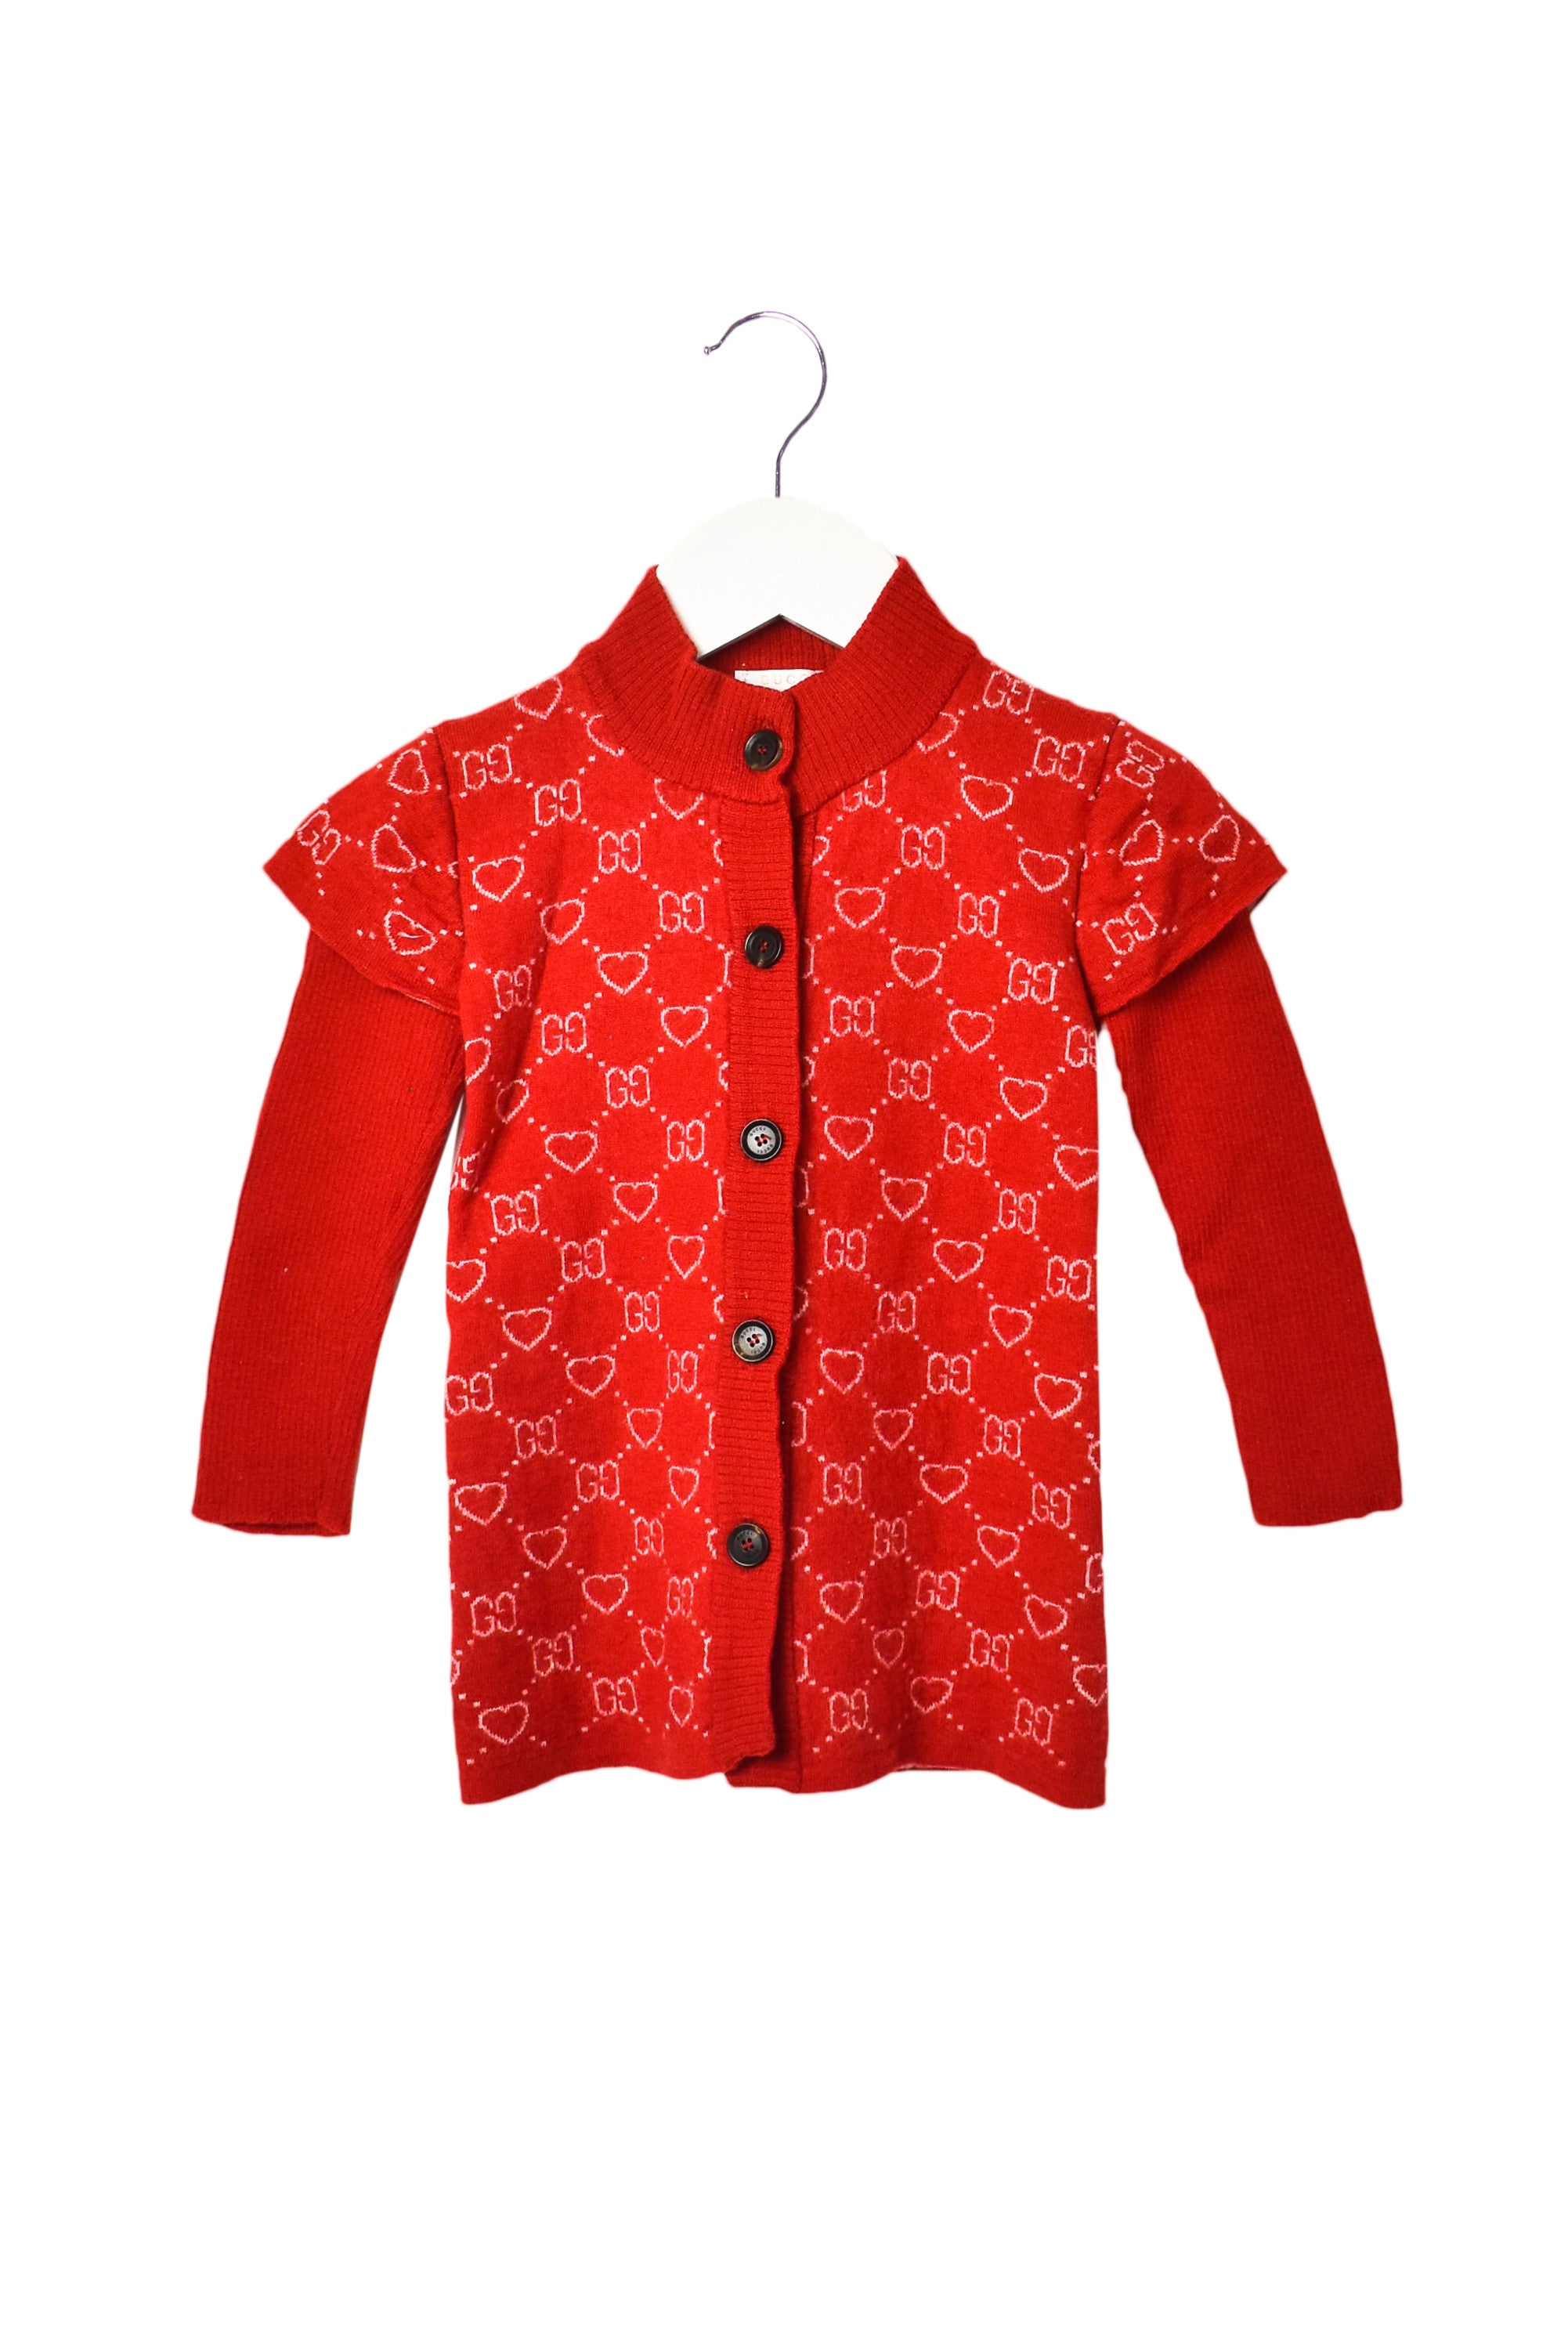 82bb8435c 10004410 Gucci Baby~Cardigan 18-24M at Retykle